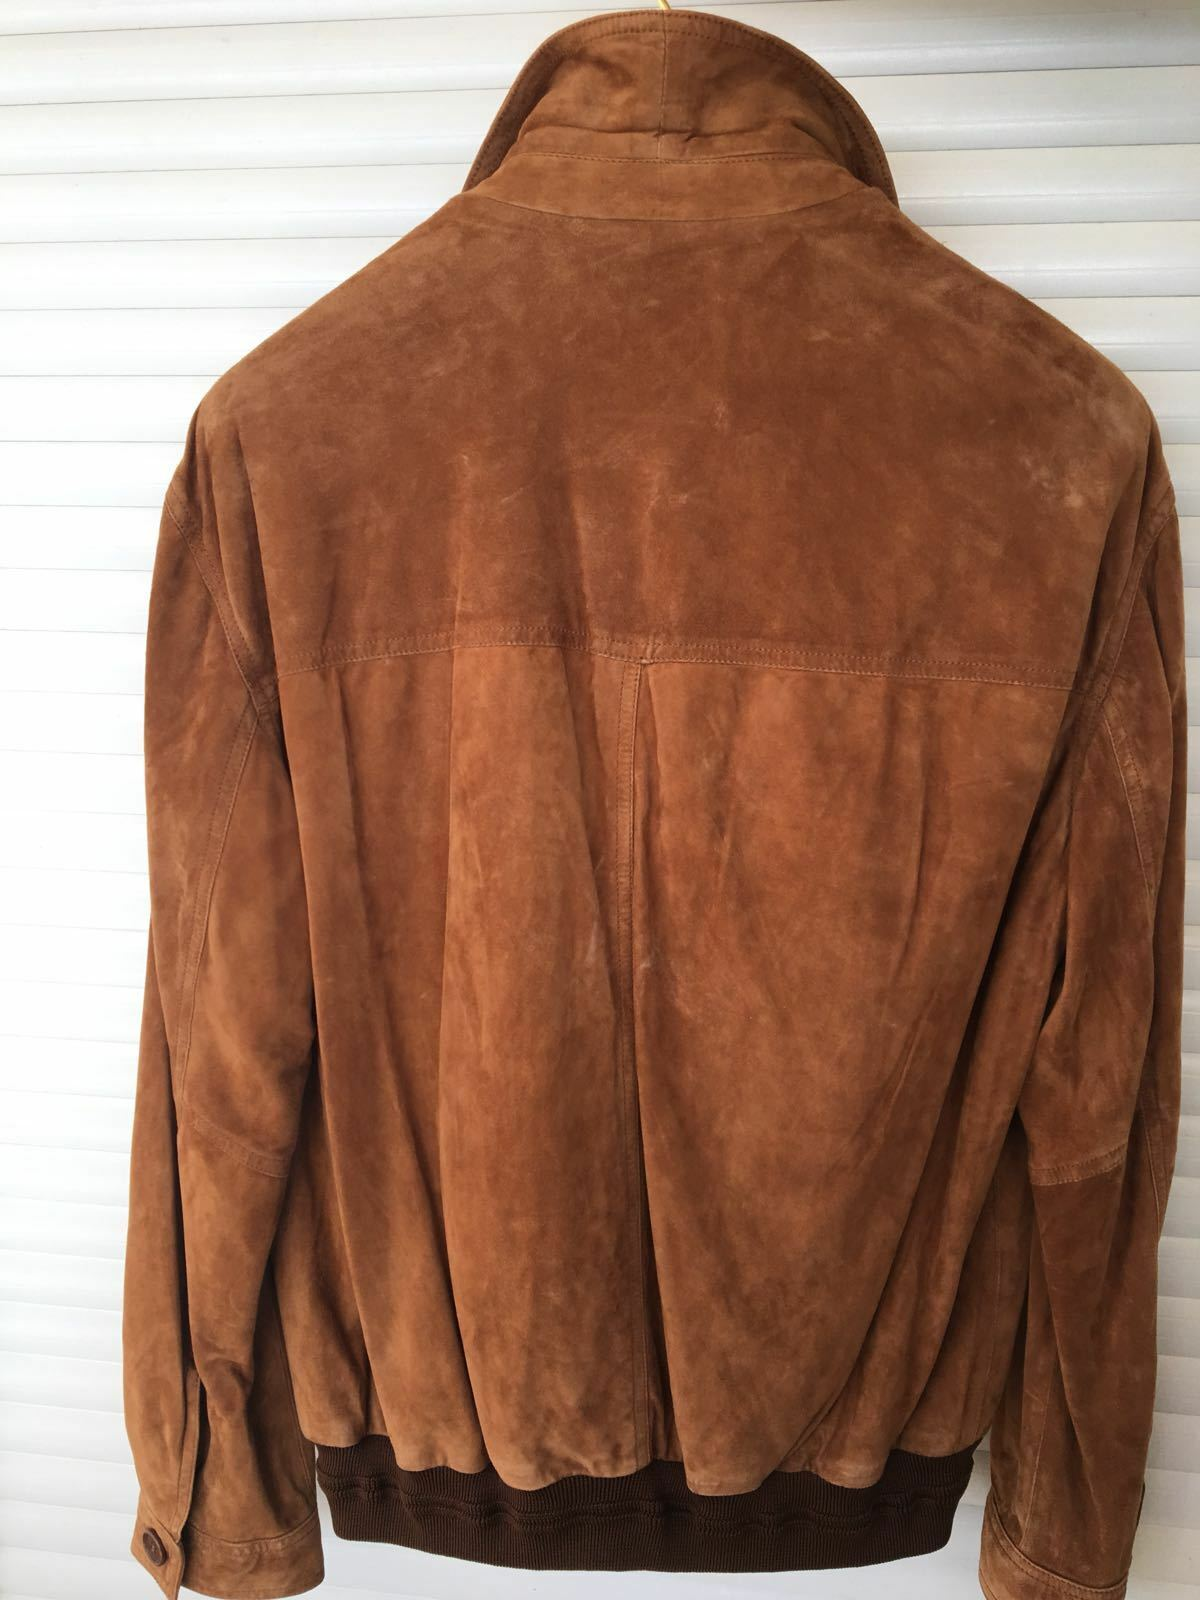 NEW Paul & Shark Yachting LEATHER LEATHER LEATHER Jacket Light Marronee Dimensione L 4eb0bd